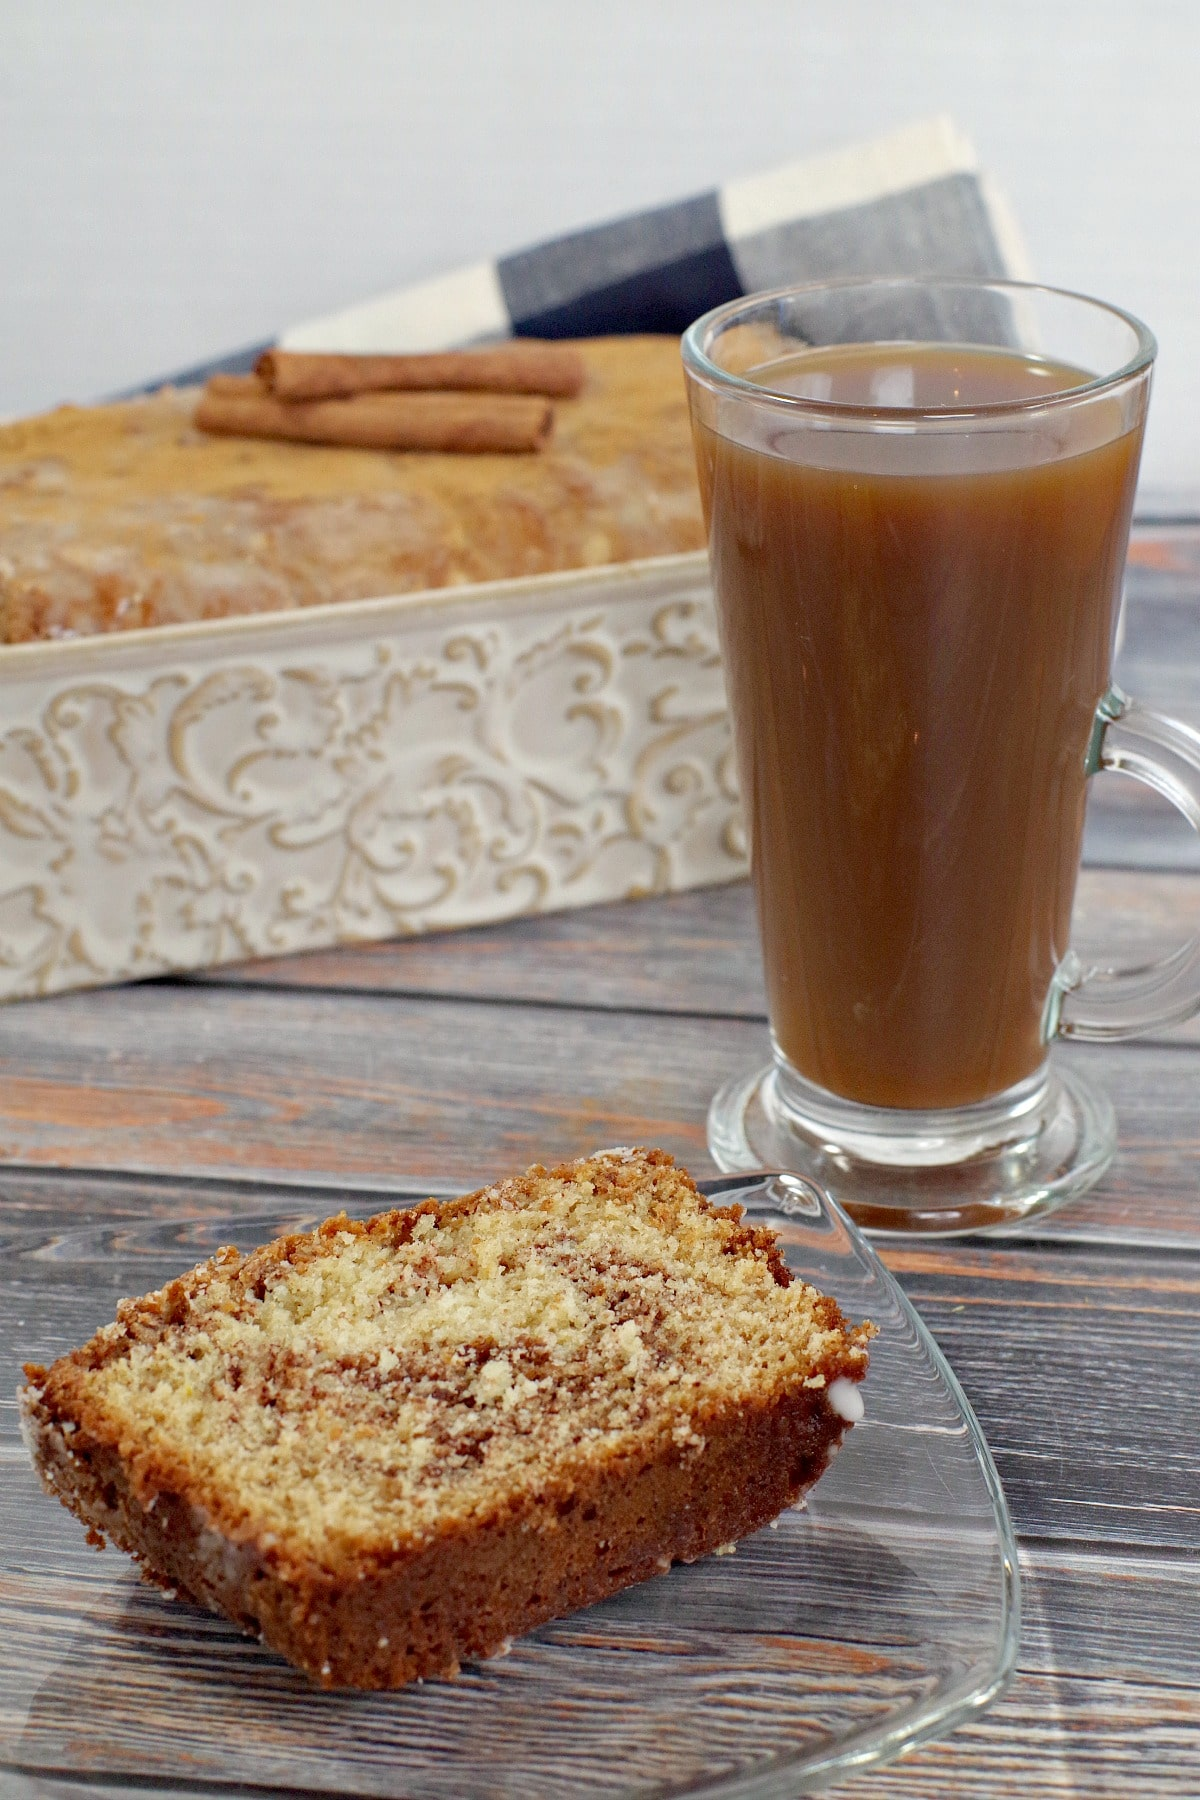 slice of cinnamon bread on a glass plate next to a cup of coffee and loaf pan in background